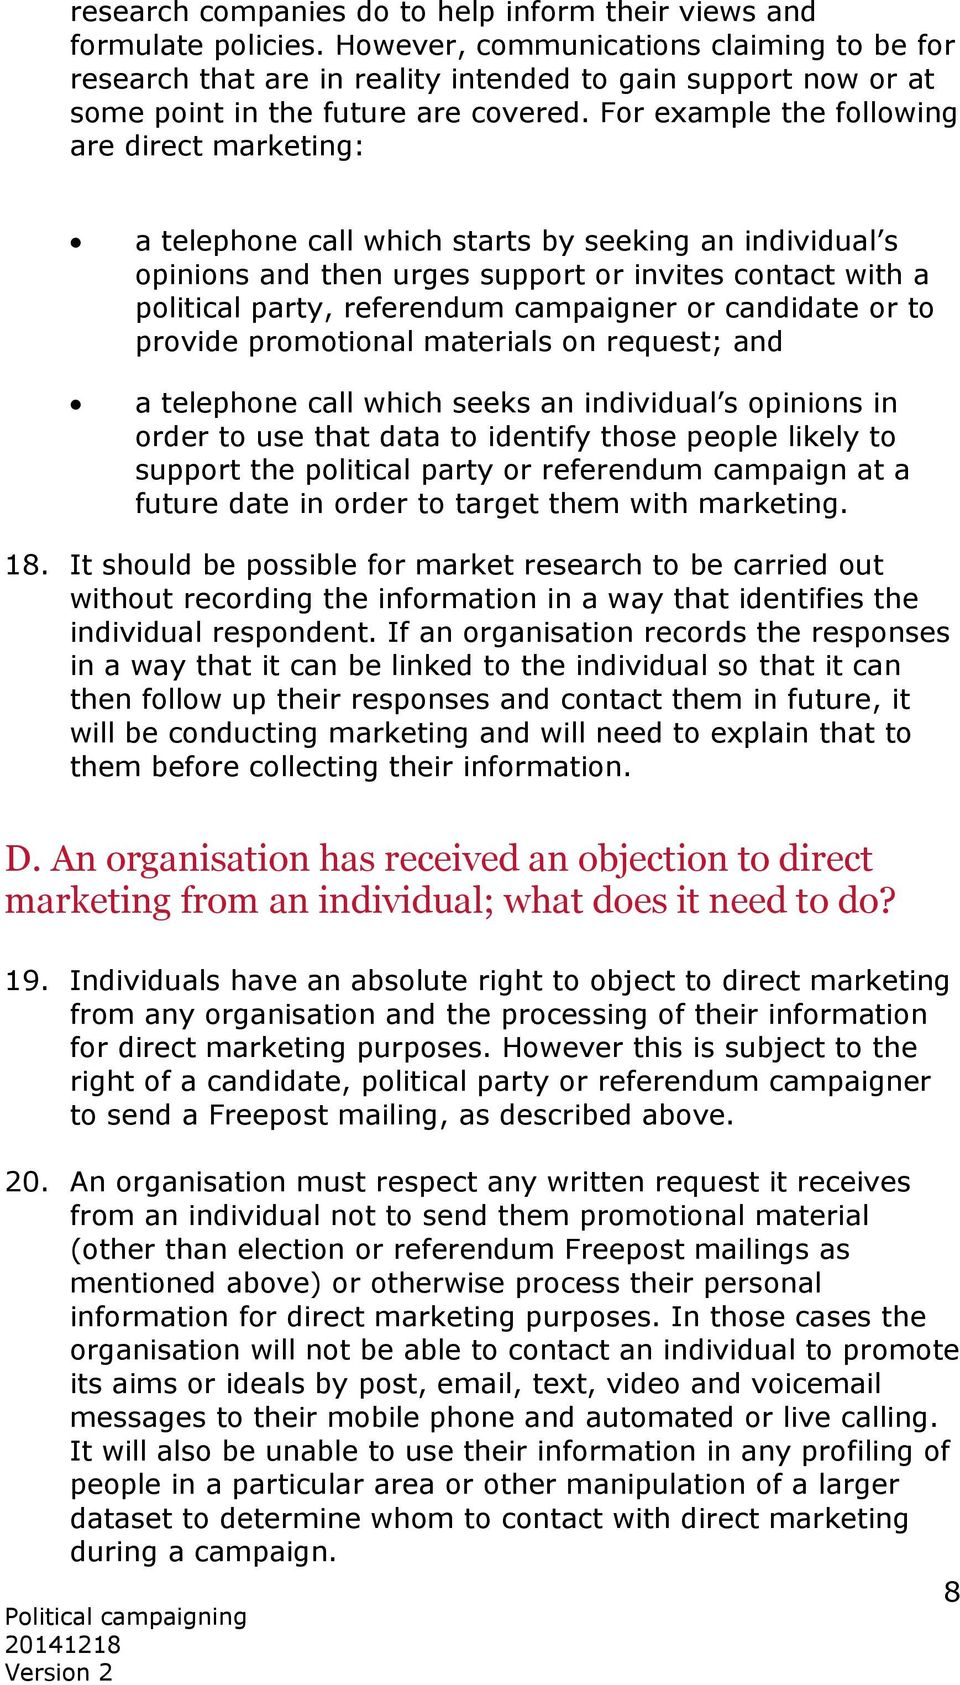 For example the following are direct marketing: a telephone call which starts by seeking an individual s opinions and then urges support or invites contact with a political party, referendum